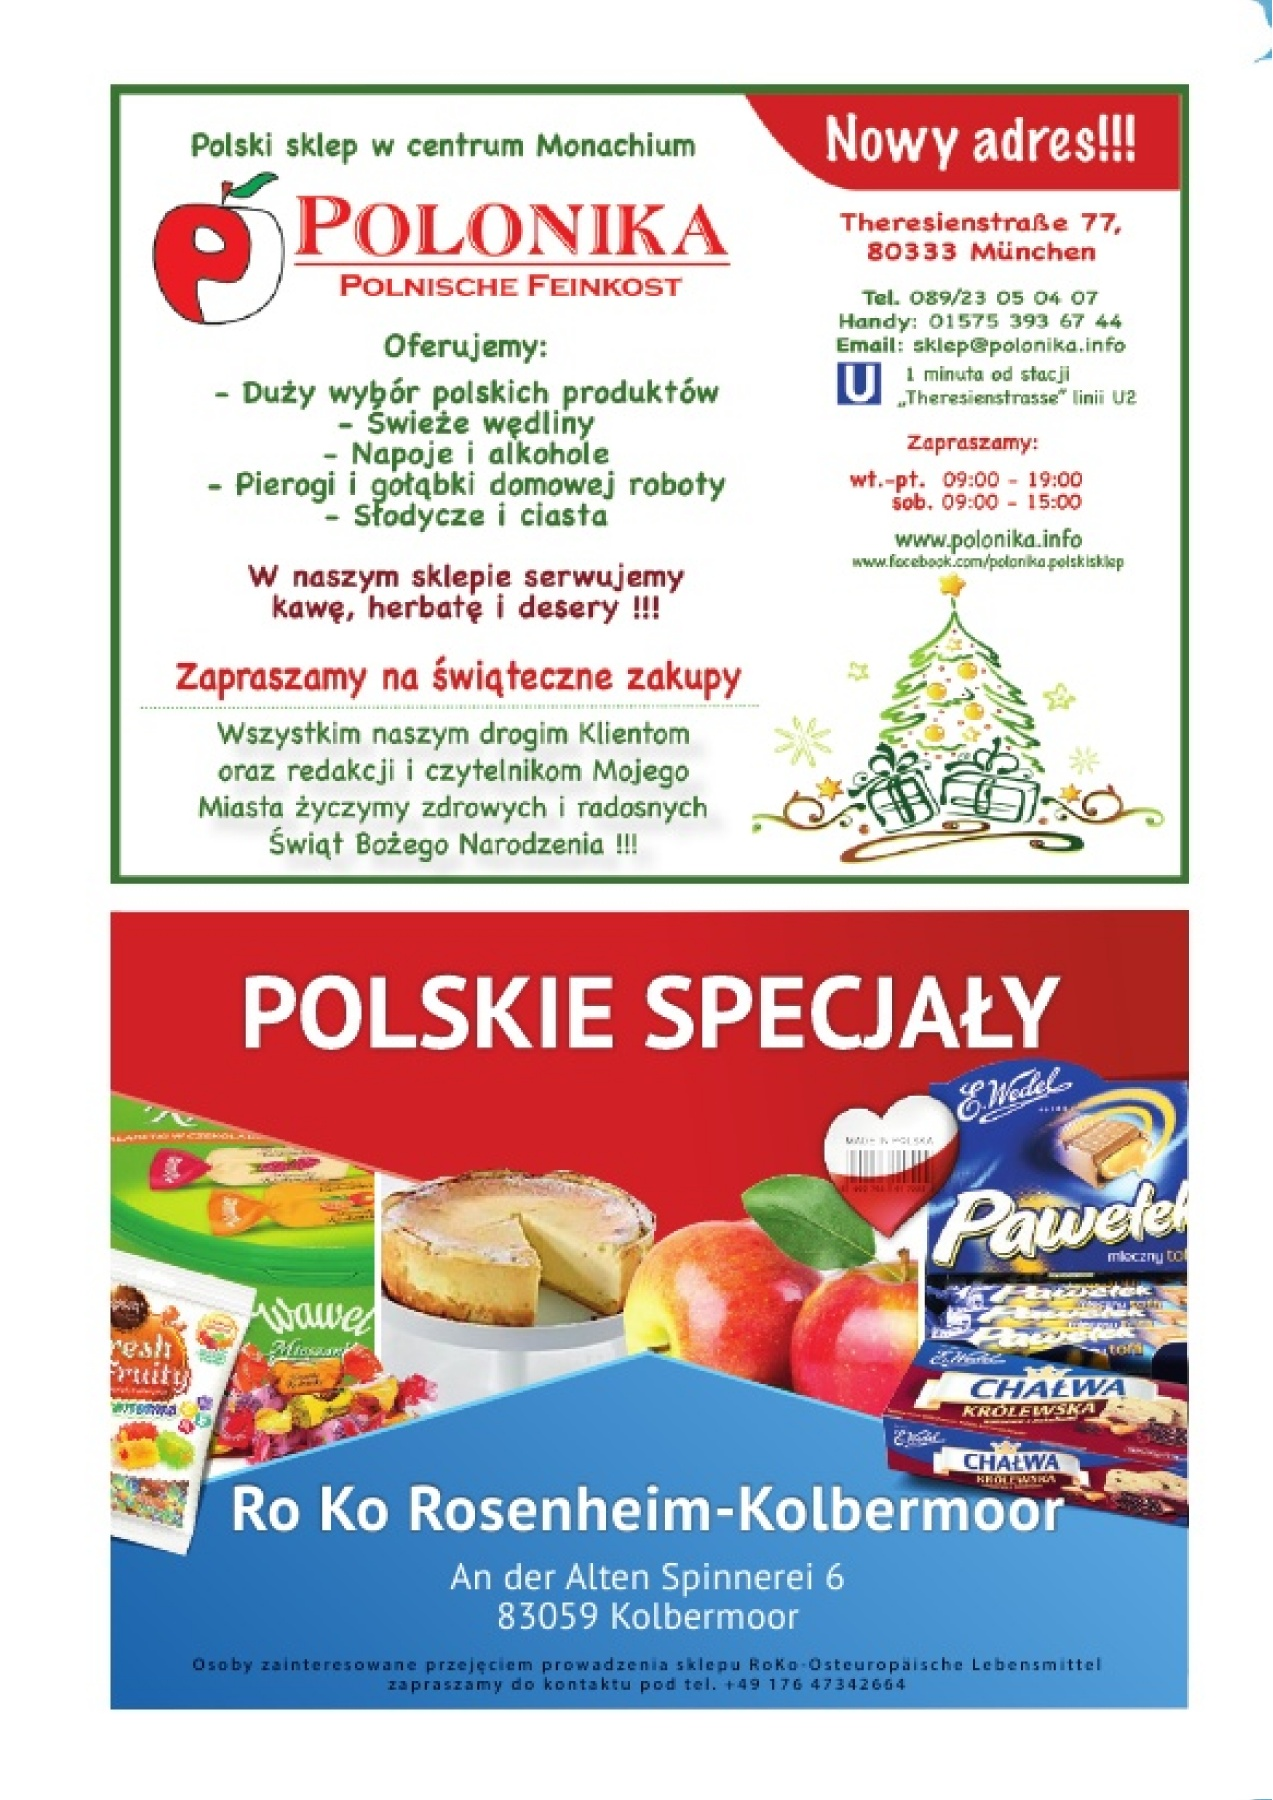 cb0780a6c358d Moje Miasto nr 63 Pages 1 - 50 - Text Version | AnyFlip